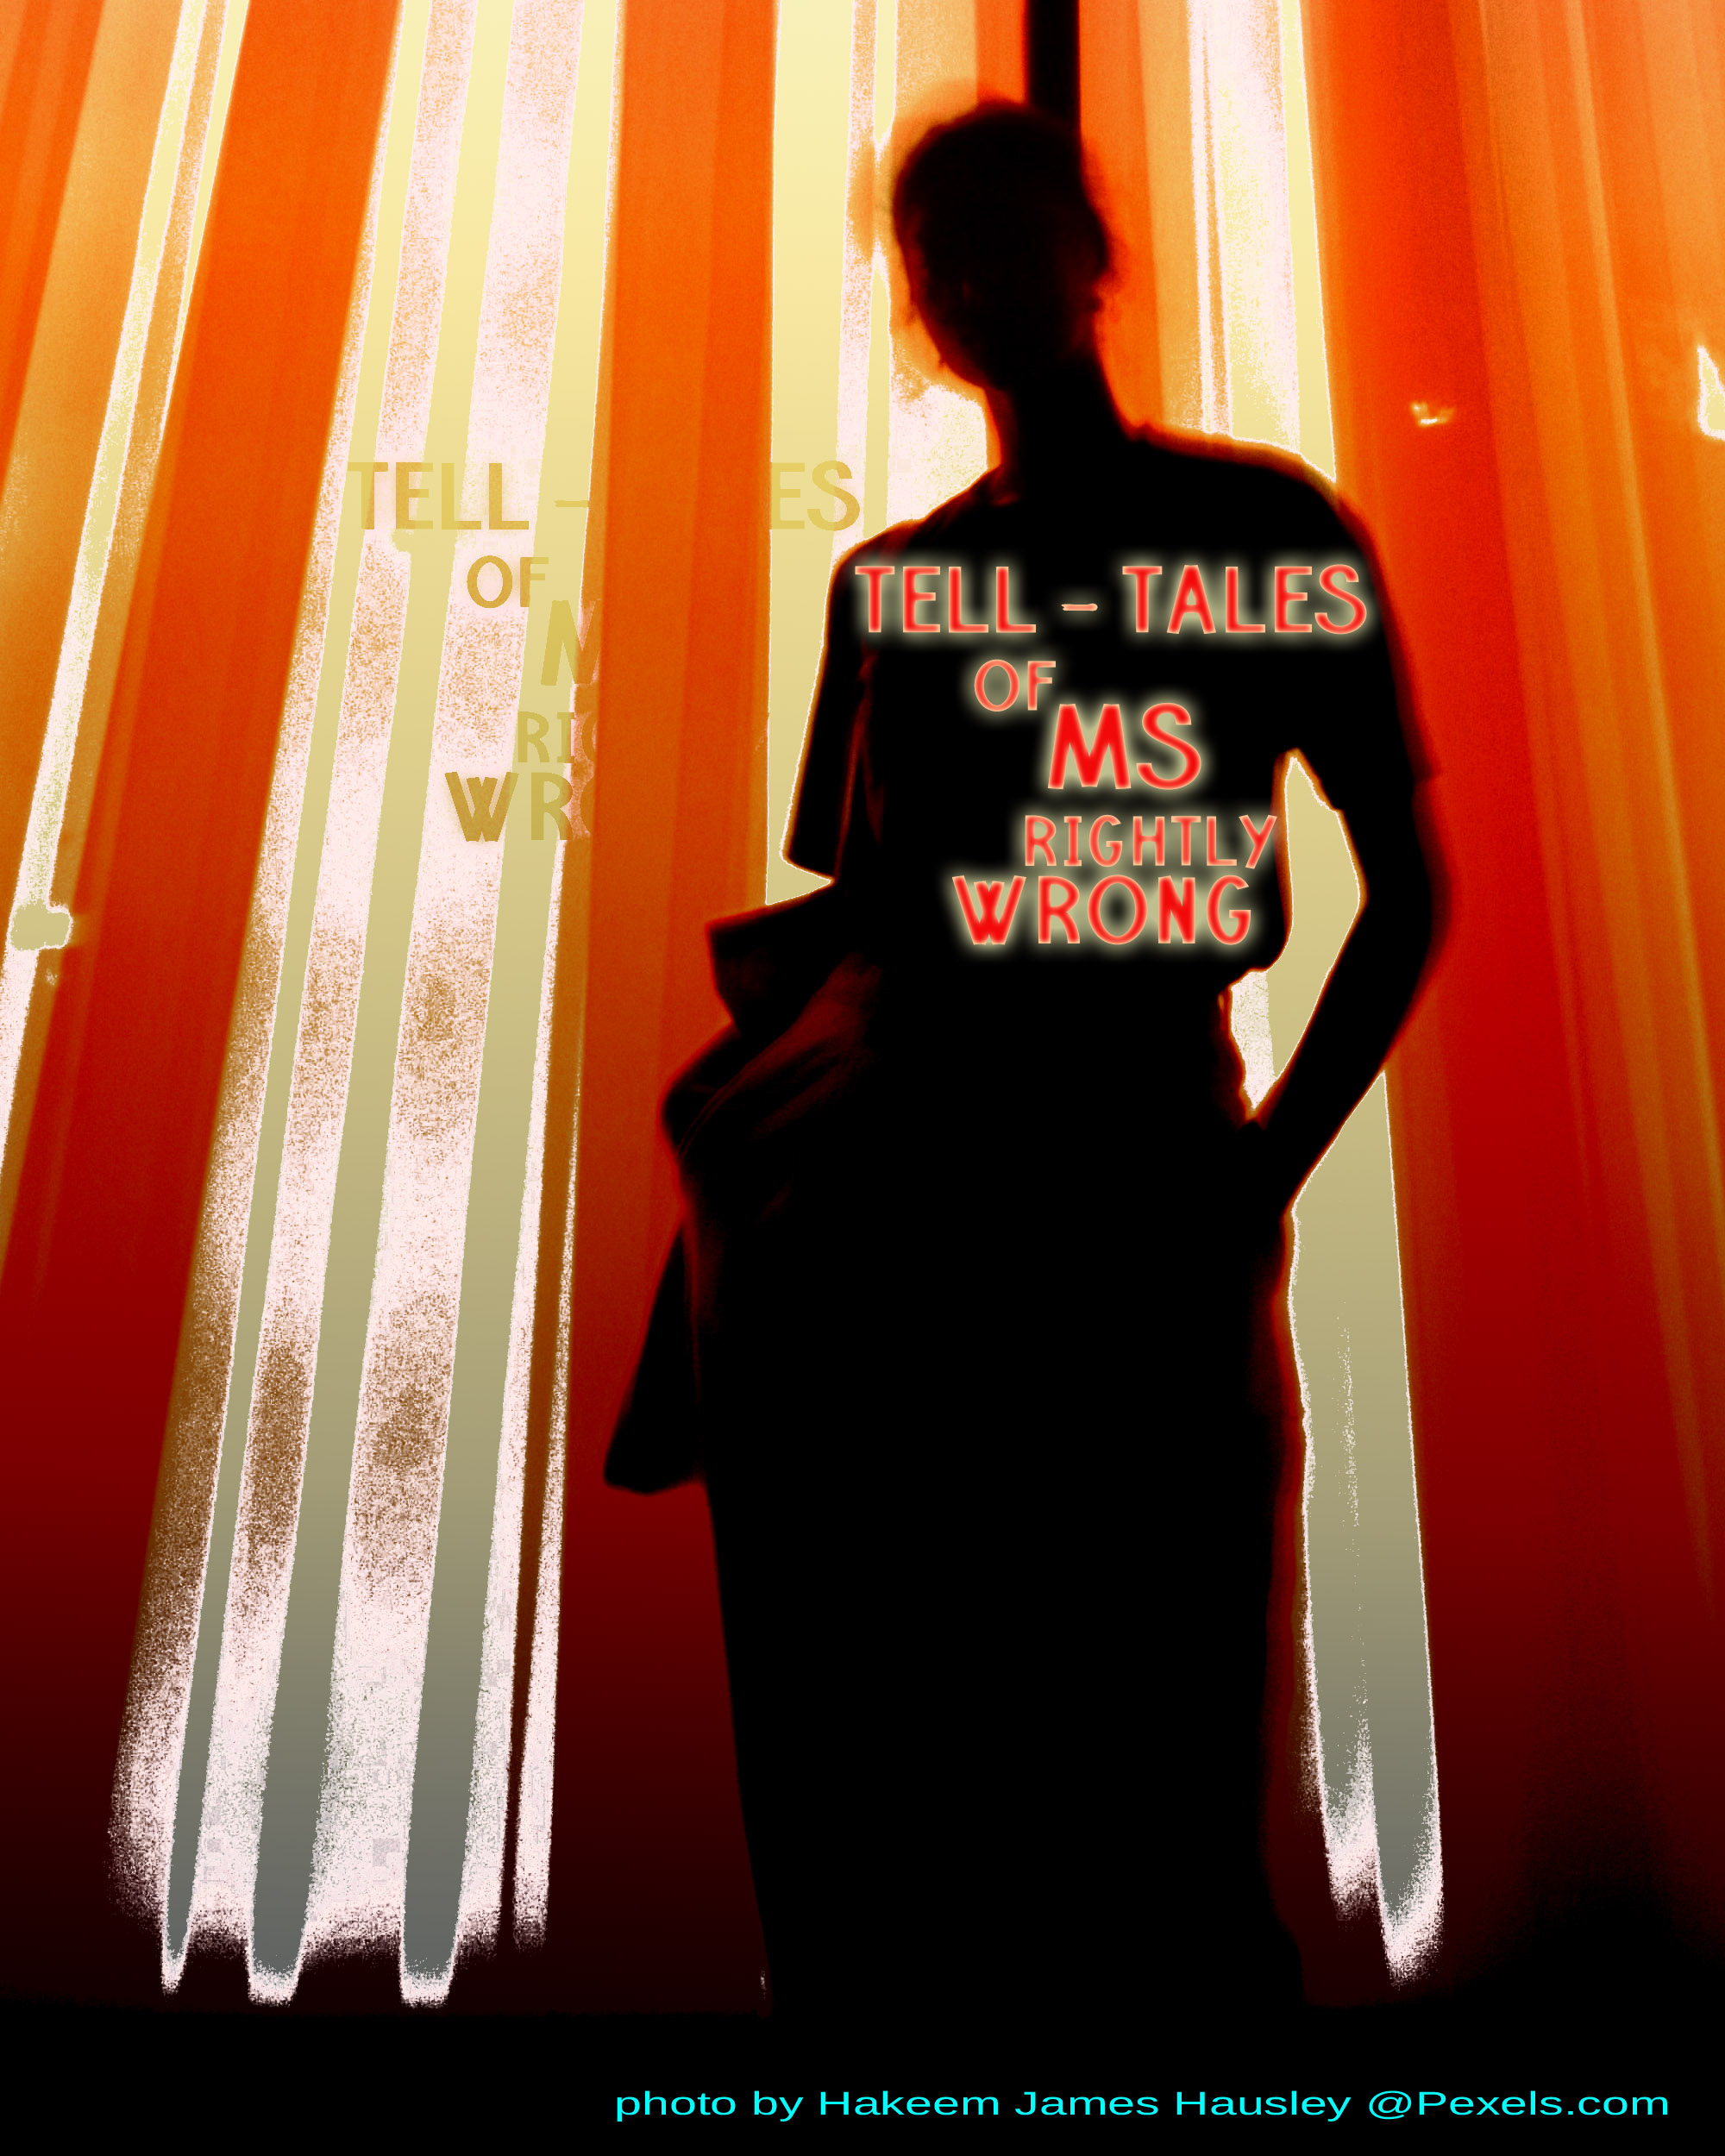 Tell-tales of Ms Rightly Wrong